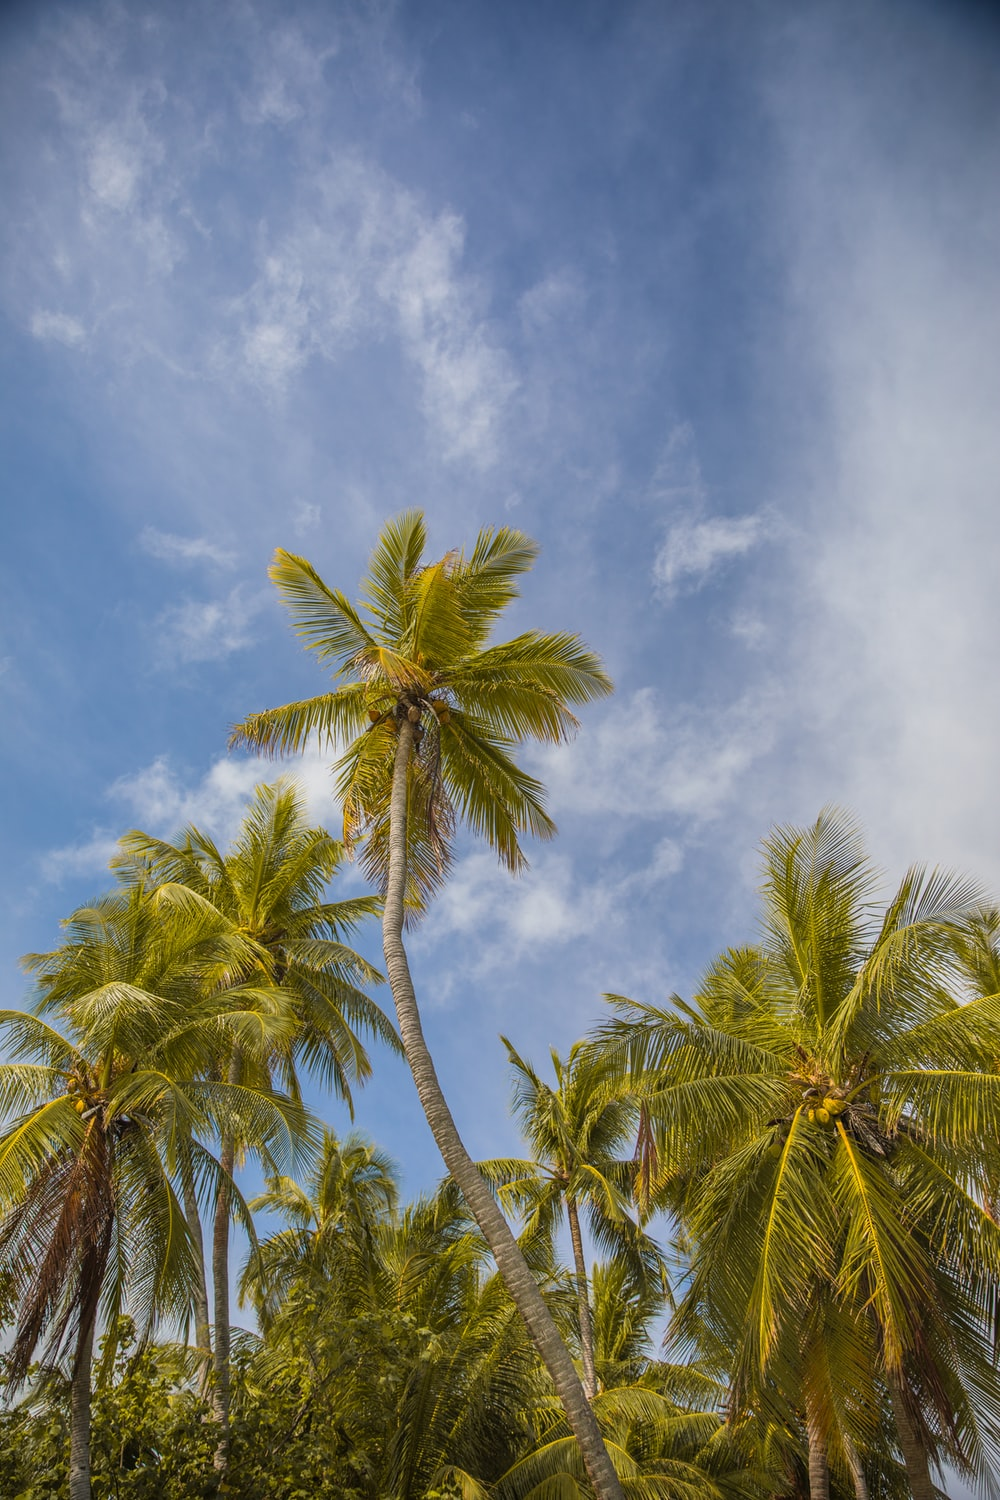 green coconut tree under white clouds and blue sky during daytime